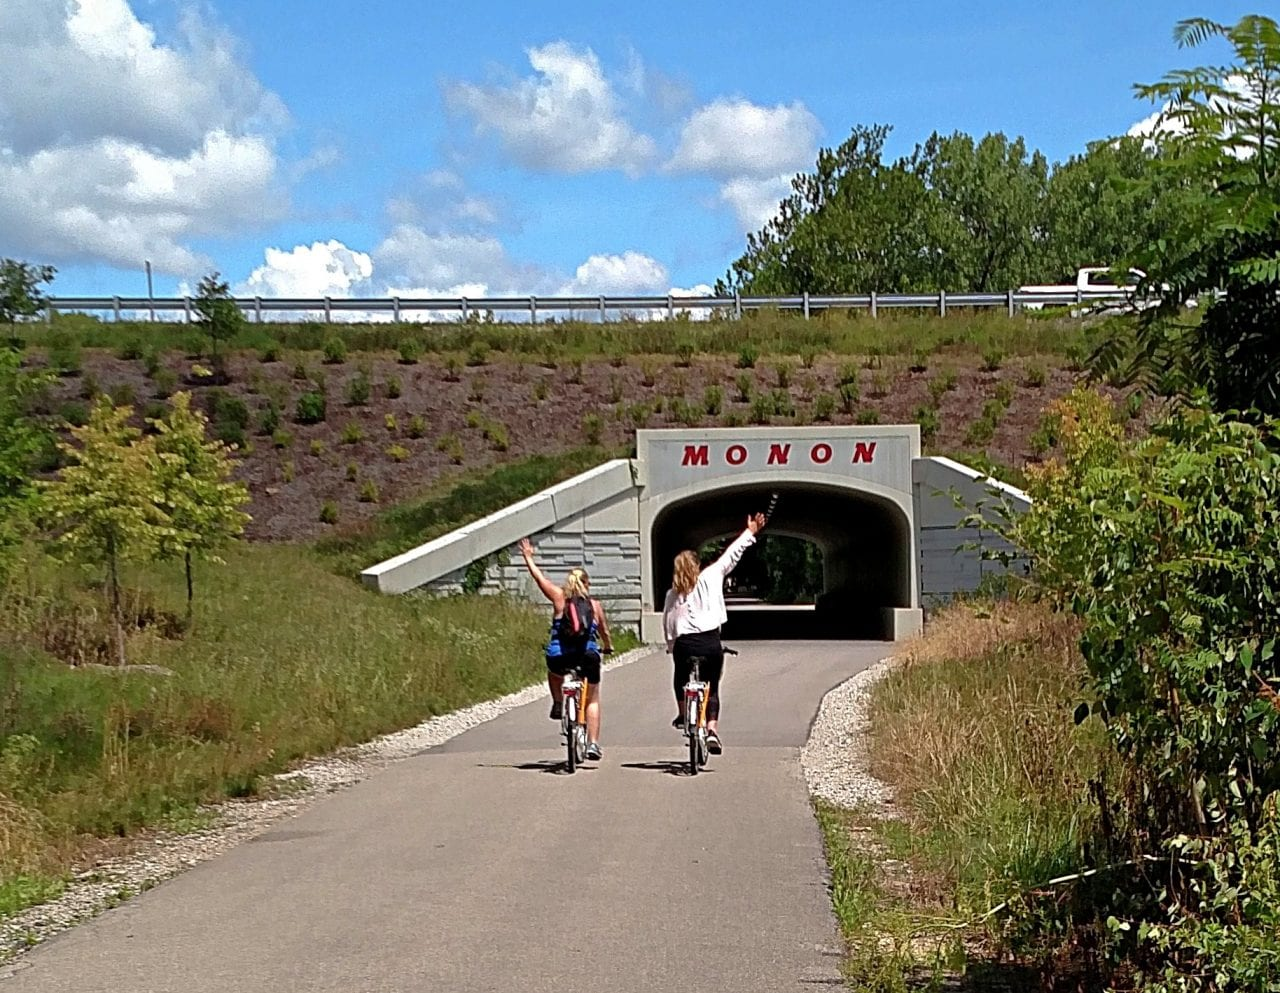 Biking the Monon Trail in Indiana